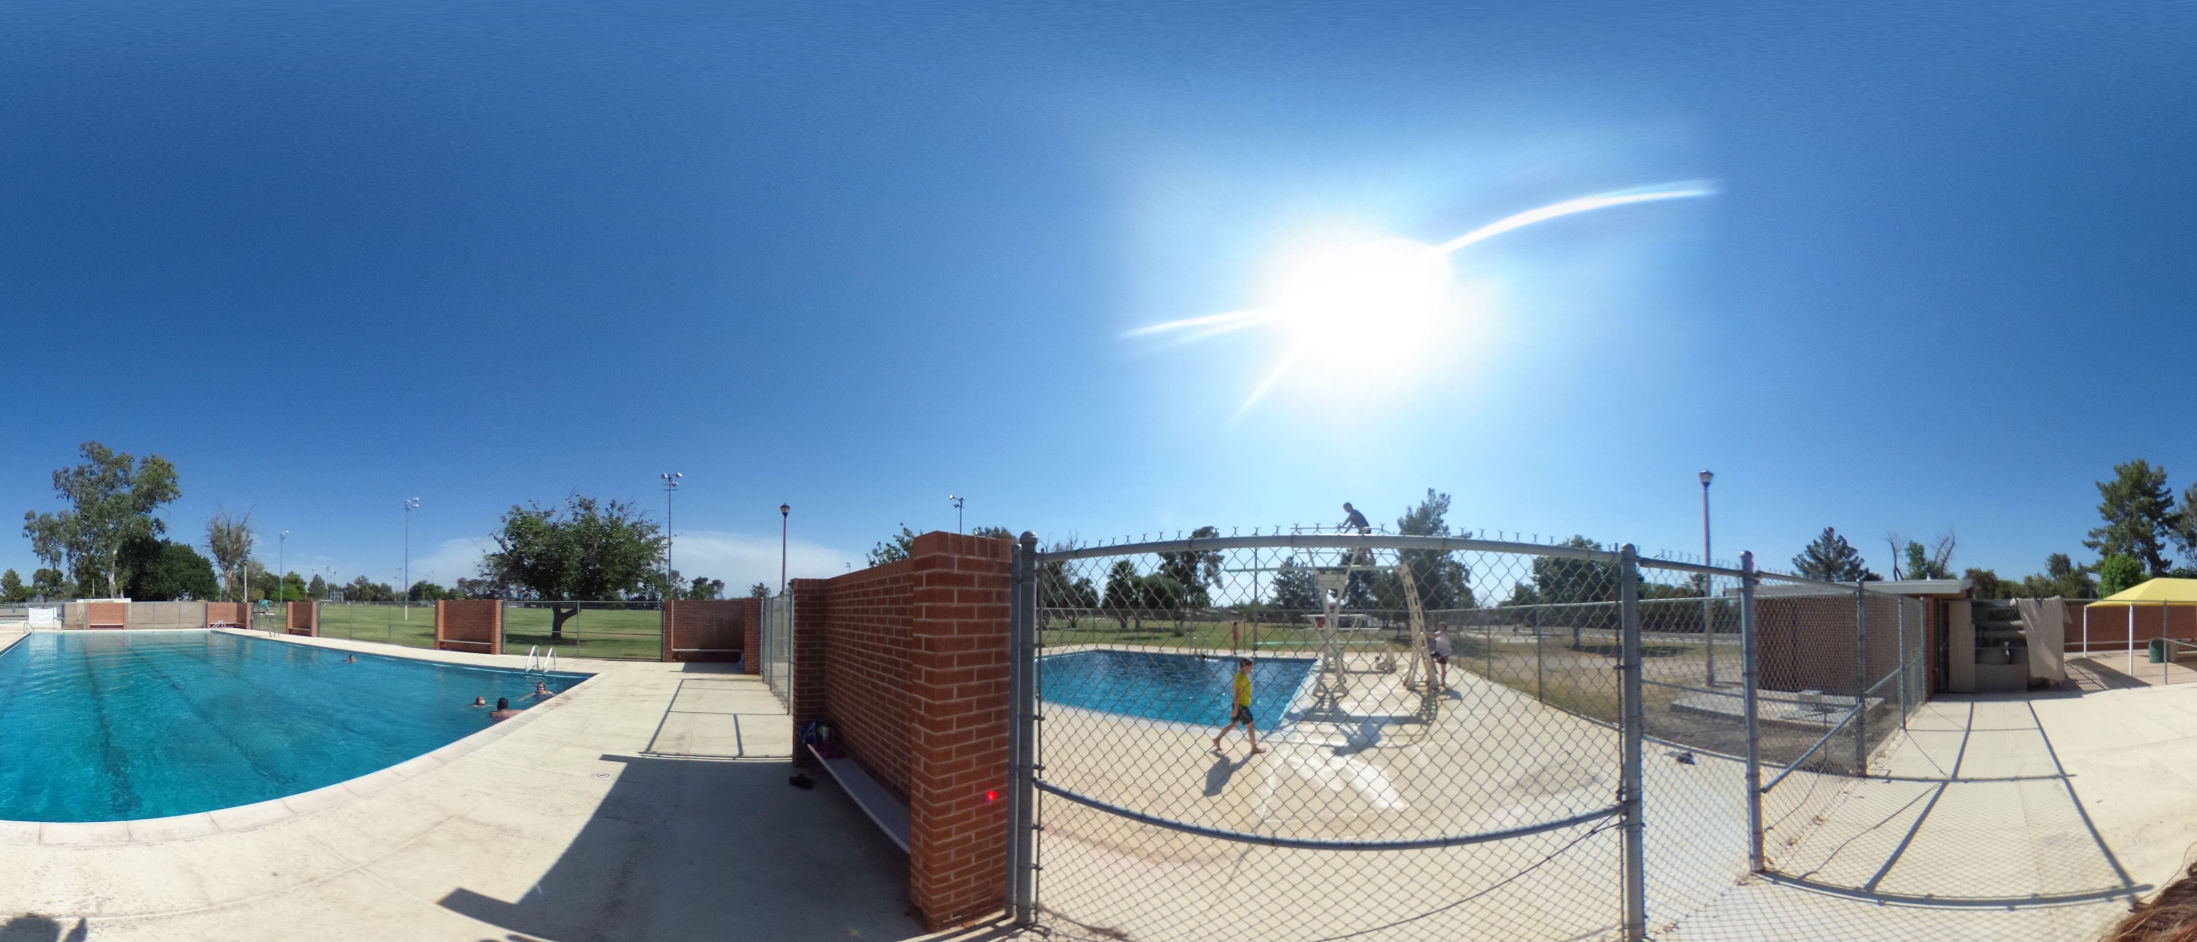 A 360 view of Palo Verde Pool